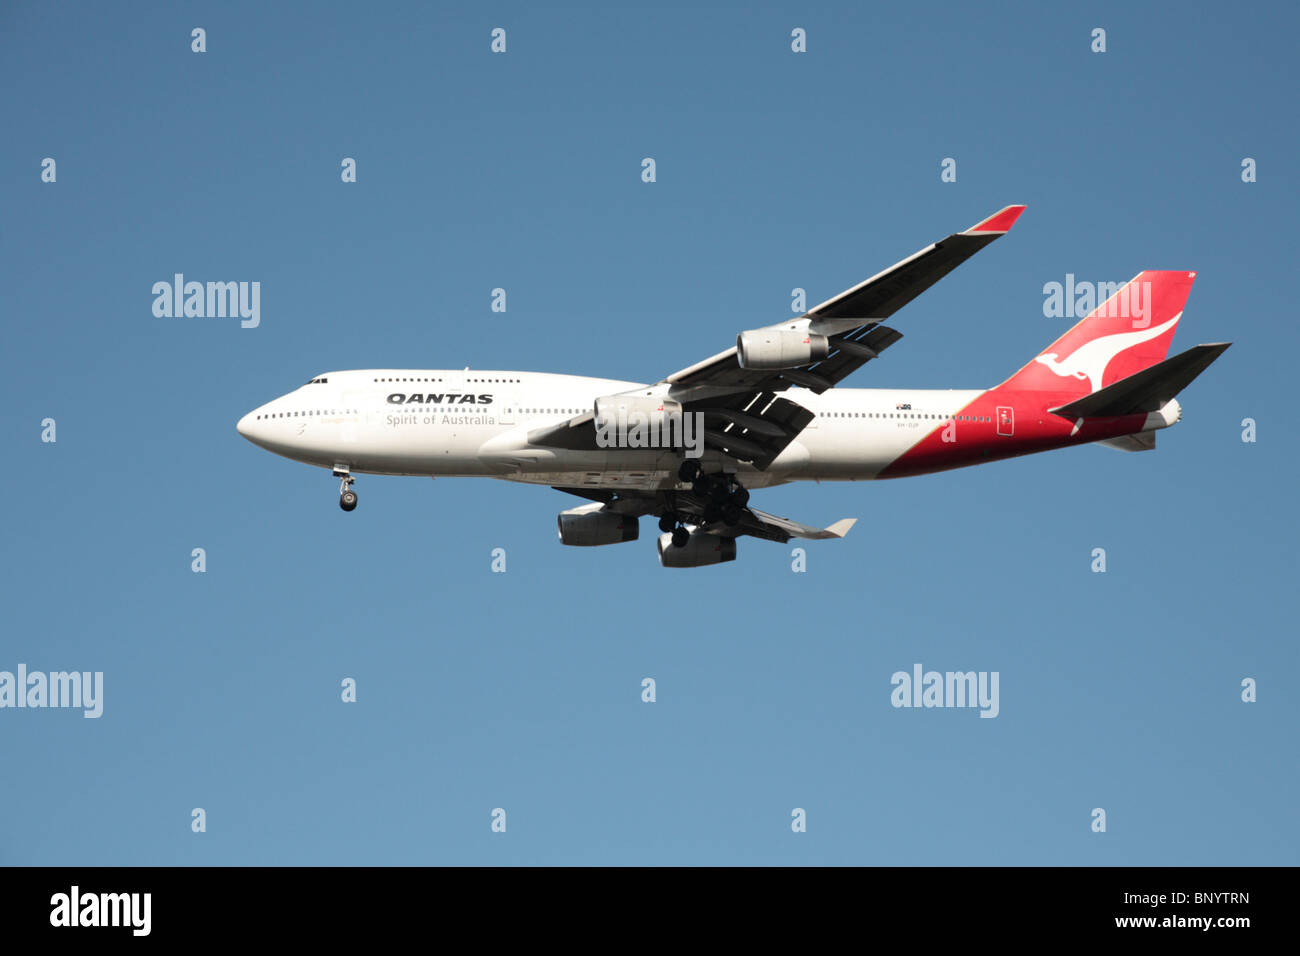 QANTAS Boeing 747-438 on final approach to Heathrow airport - Stock Image